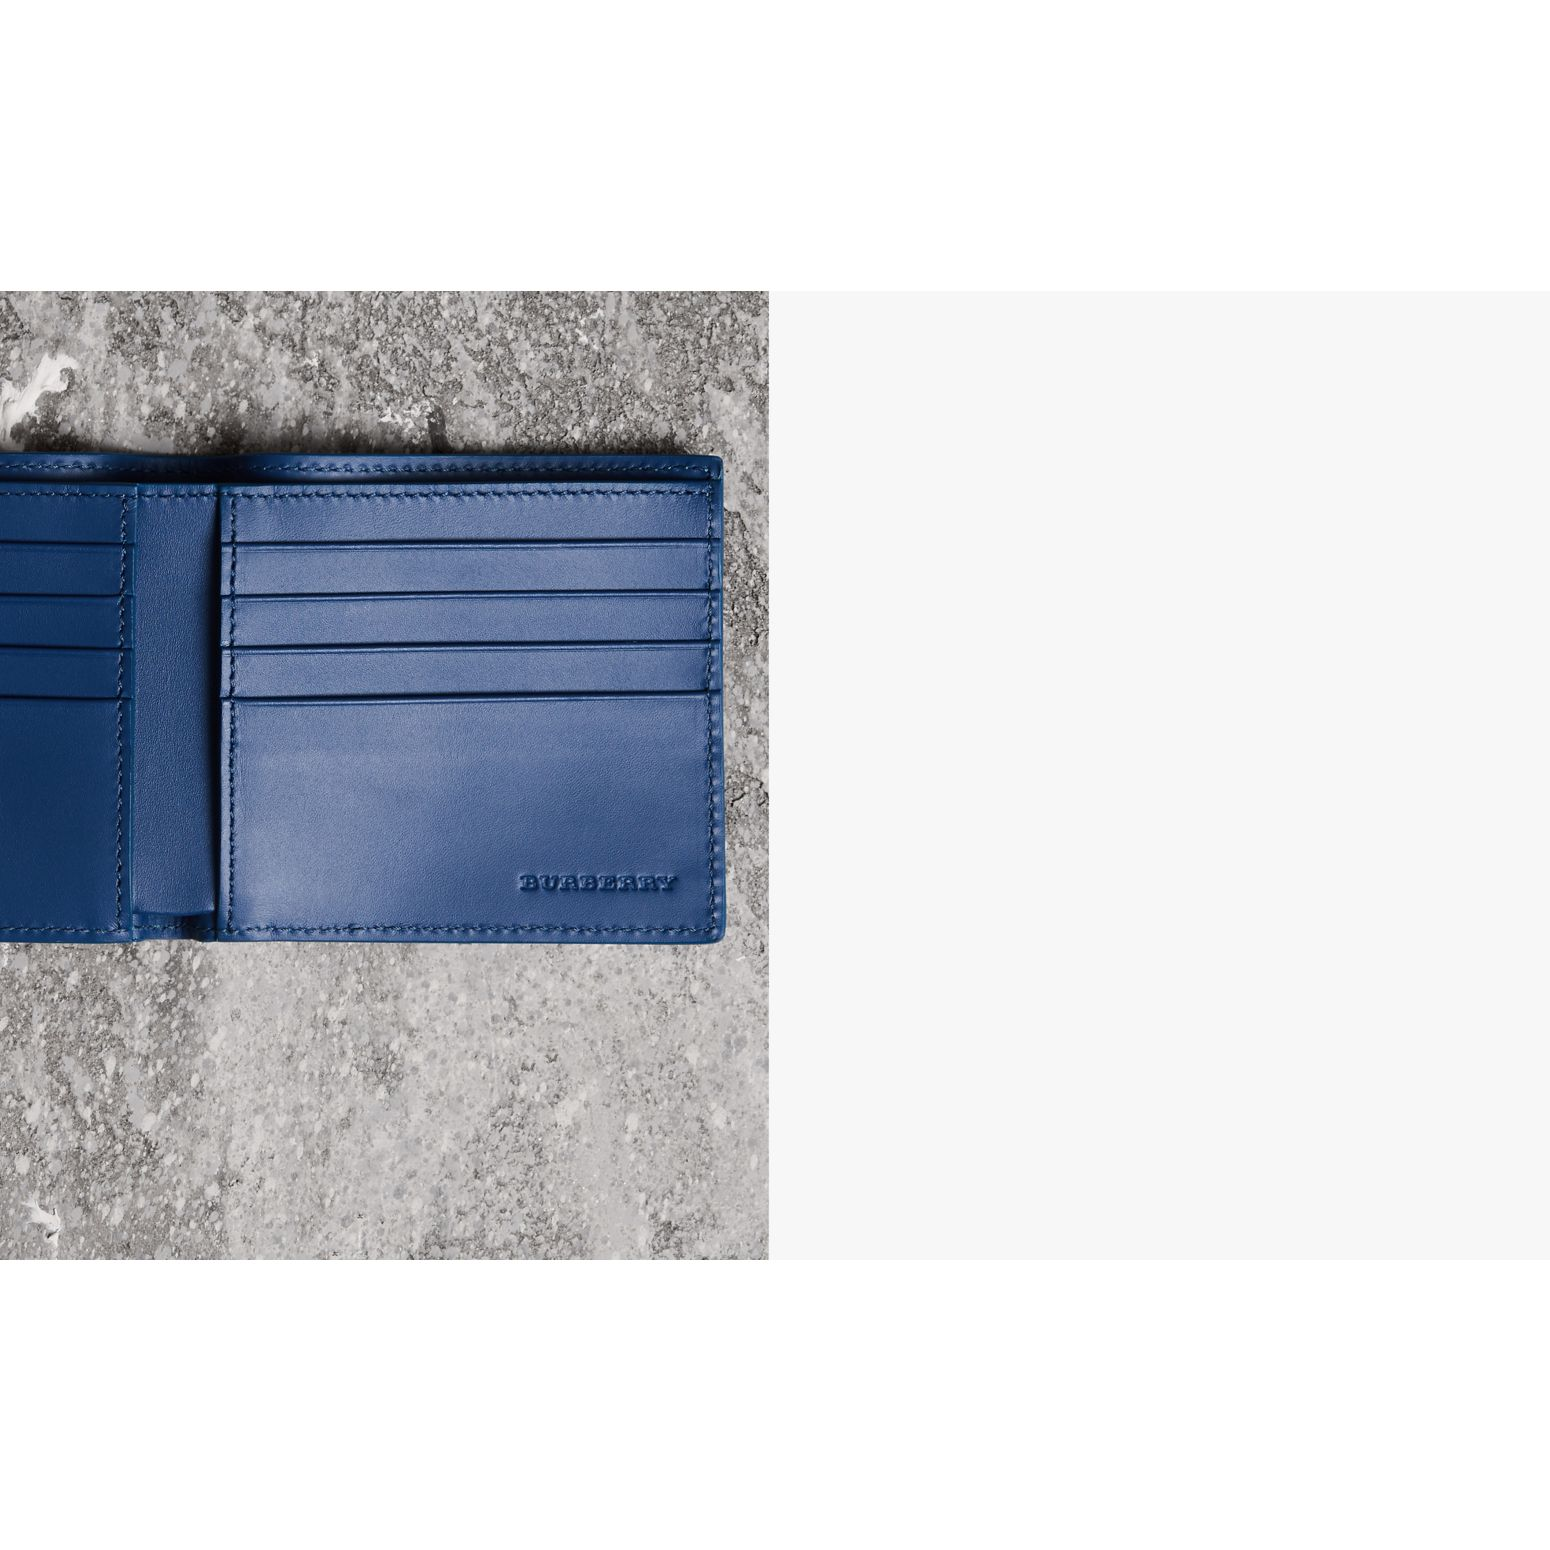 Grainy Leather International Bifold Wallet in Bright Ultramarine - Men | Burberry - gallery image 1